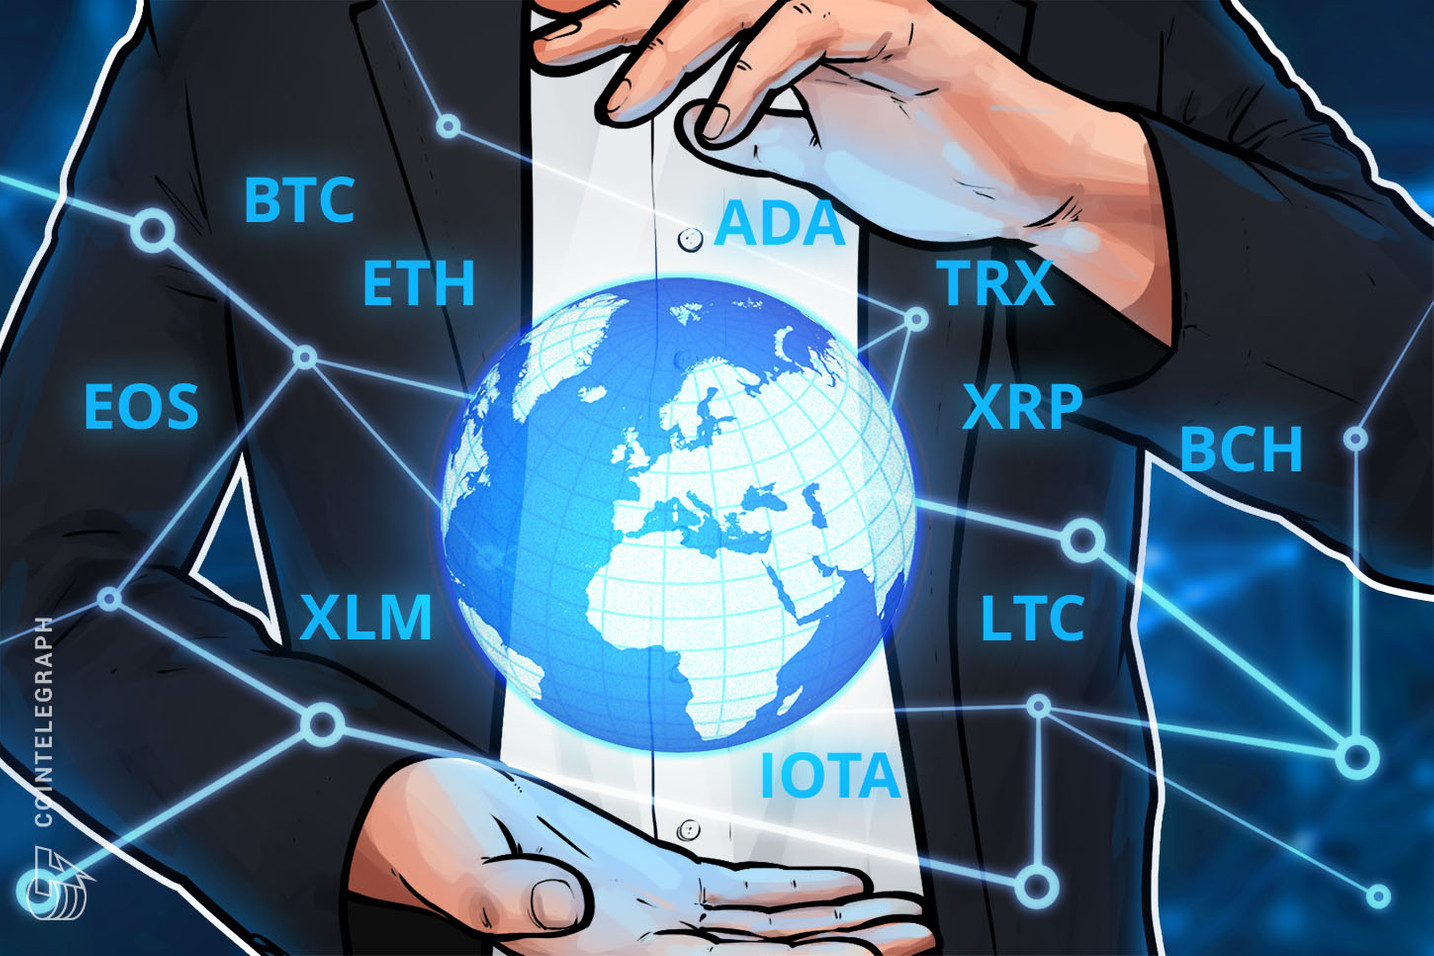 Bitcoin, Ethereum, Ripple, Bitcoin Cash, EOS, Litecoin, Cardano, Stellar, IOTA, Tron: Price Analysis, June 29